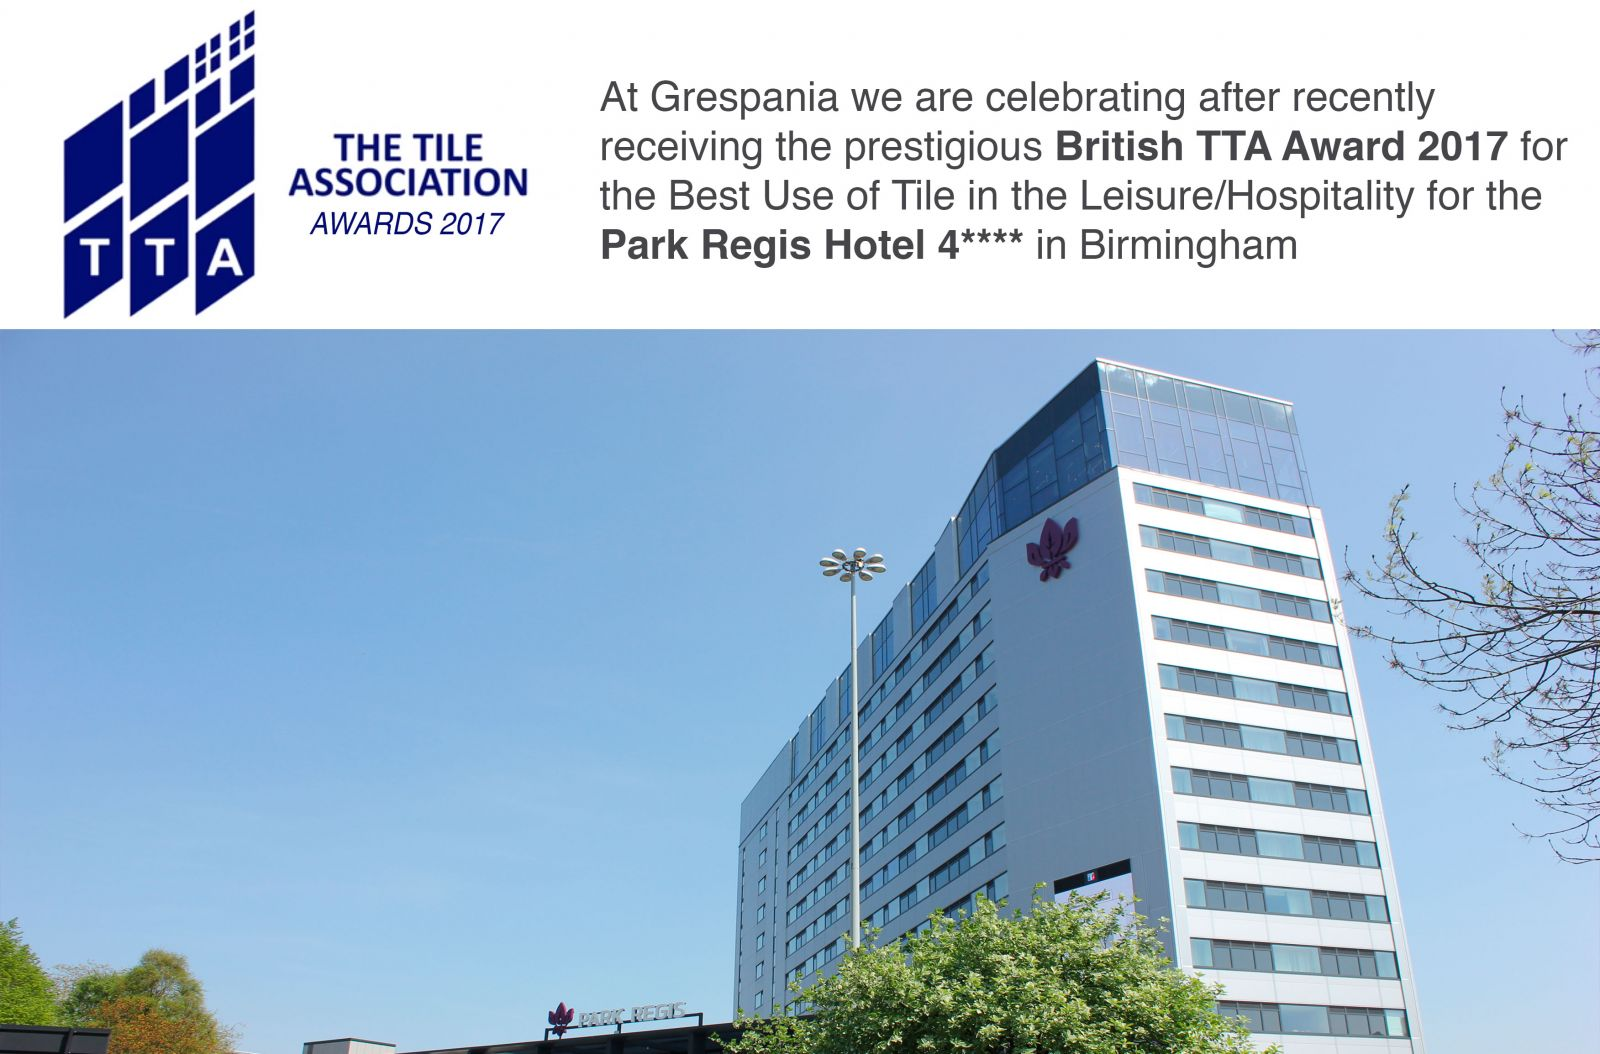 grespania awarded with the tta awards for the best use of tiles in